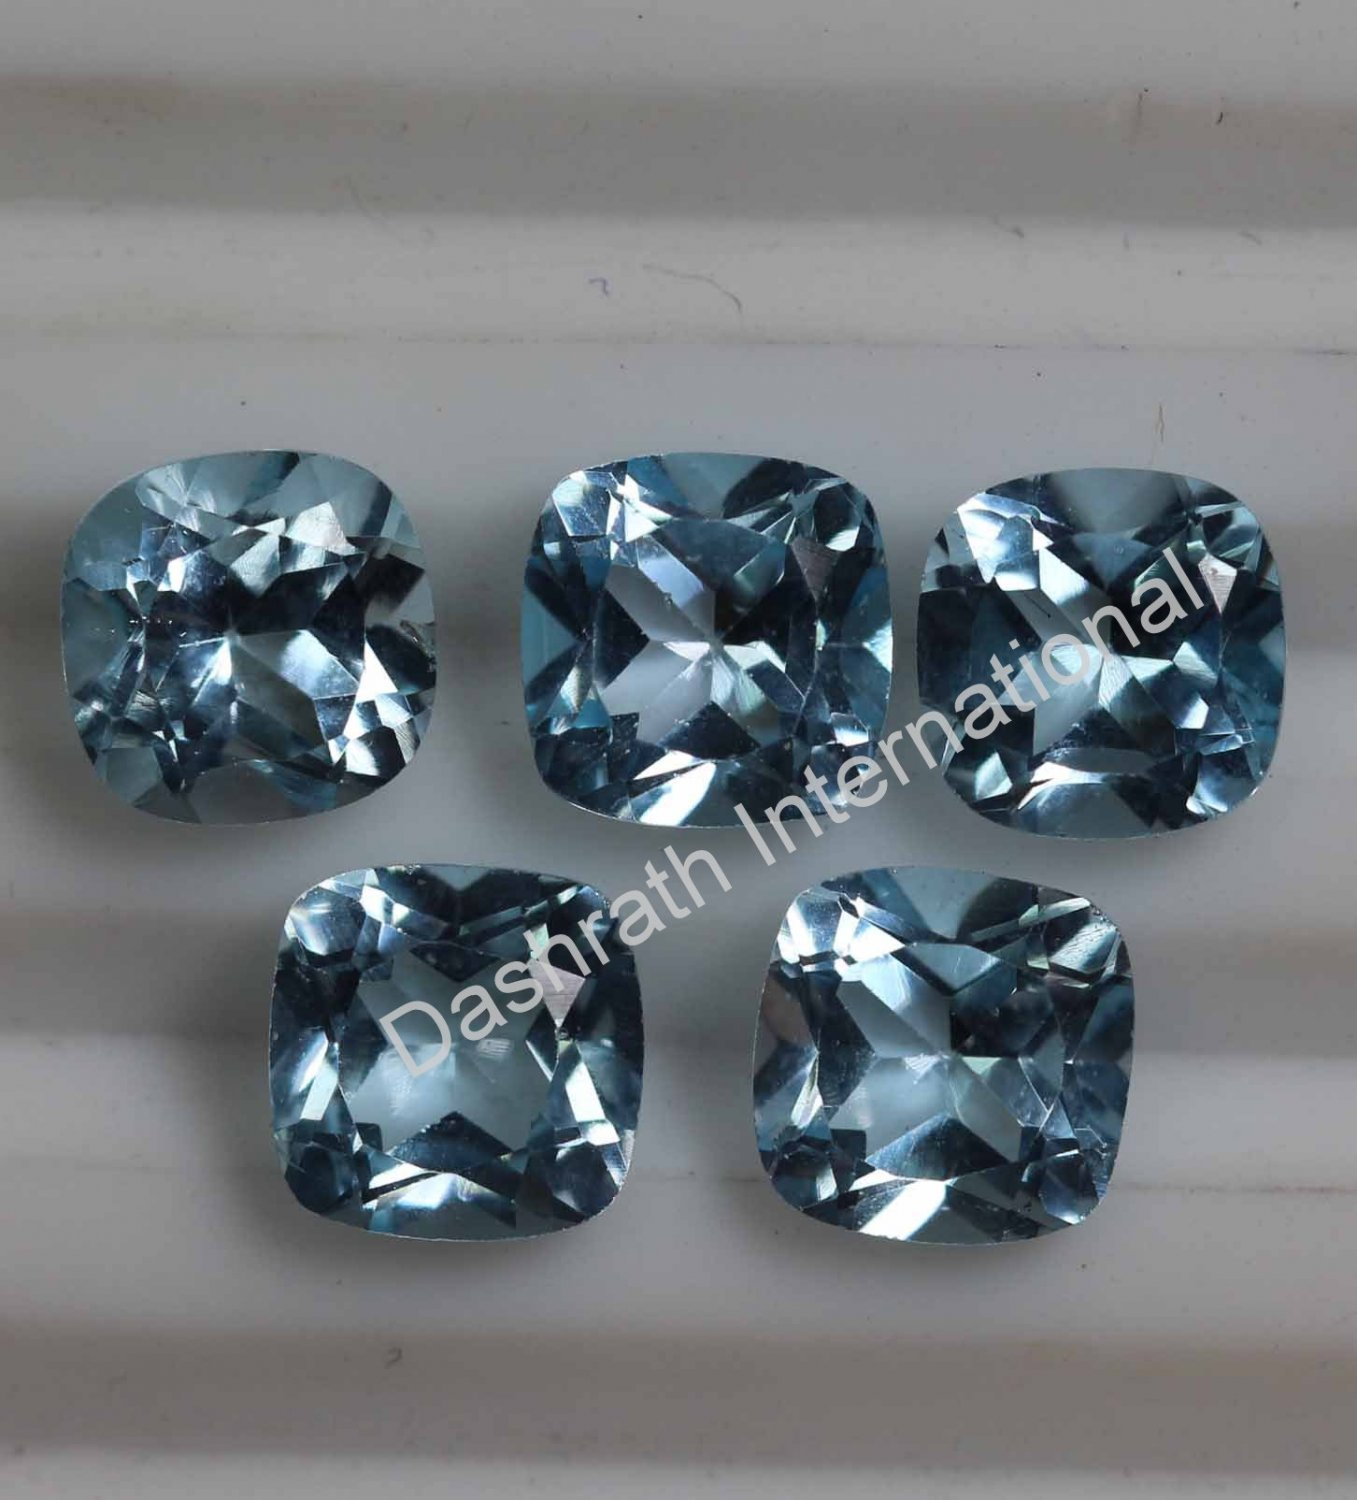 7mm Natural Sky Blue Topaz Faceted Cut Cushion 50 Pieces Lot Top Quality Loose Gemstone